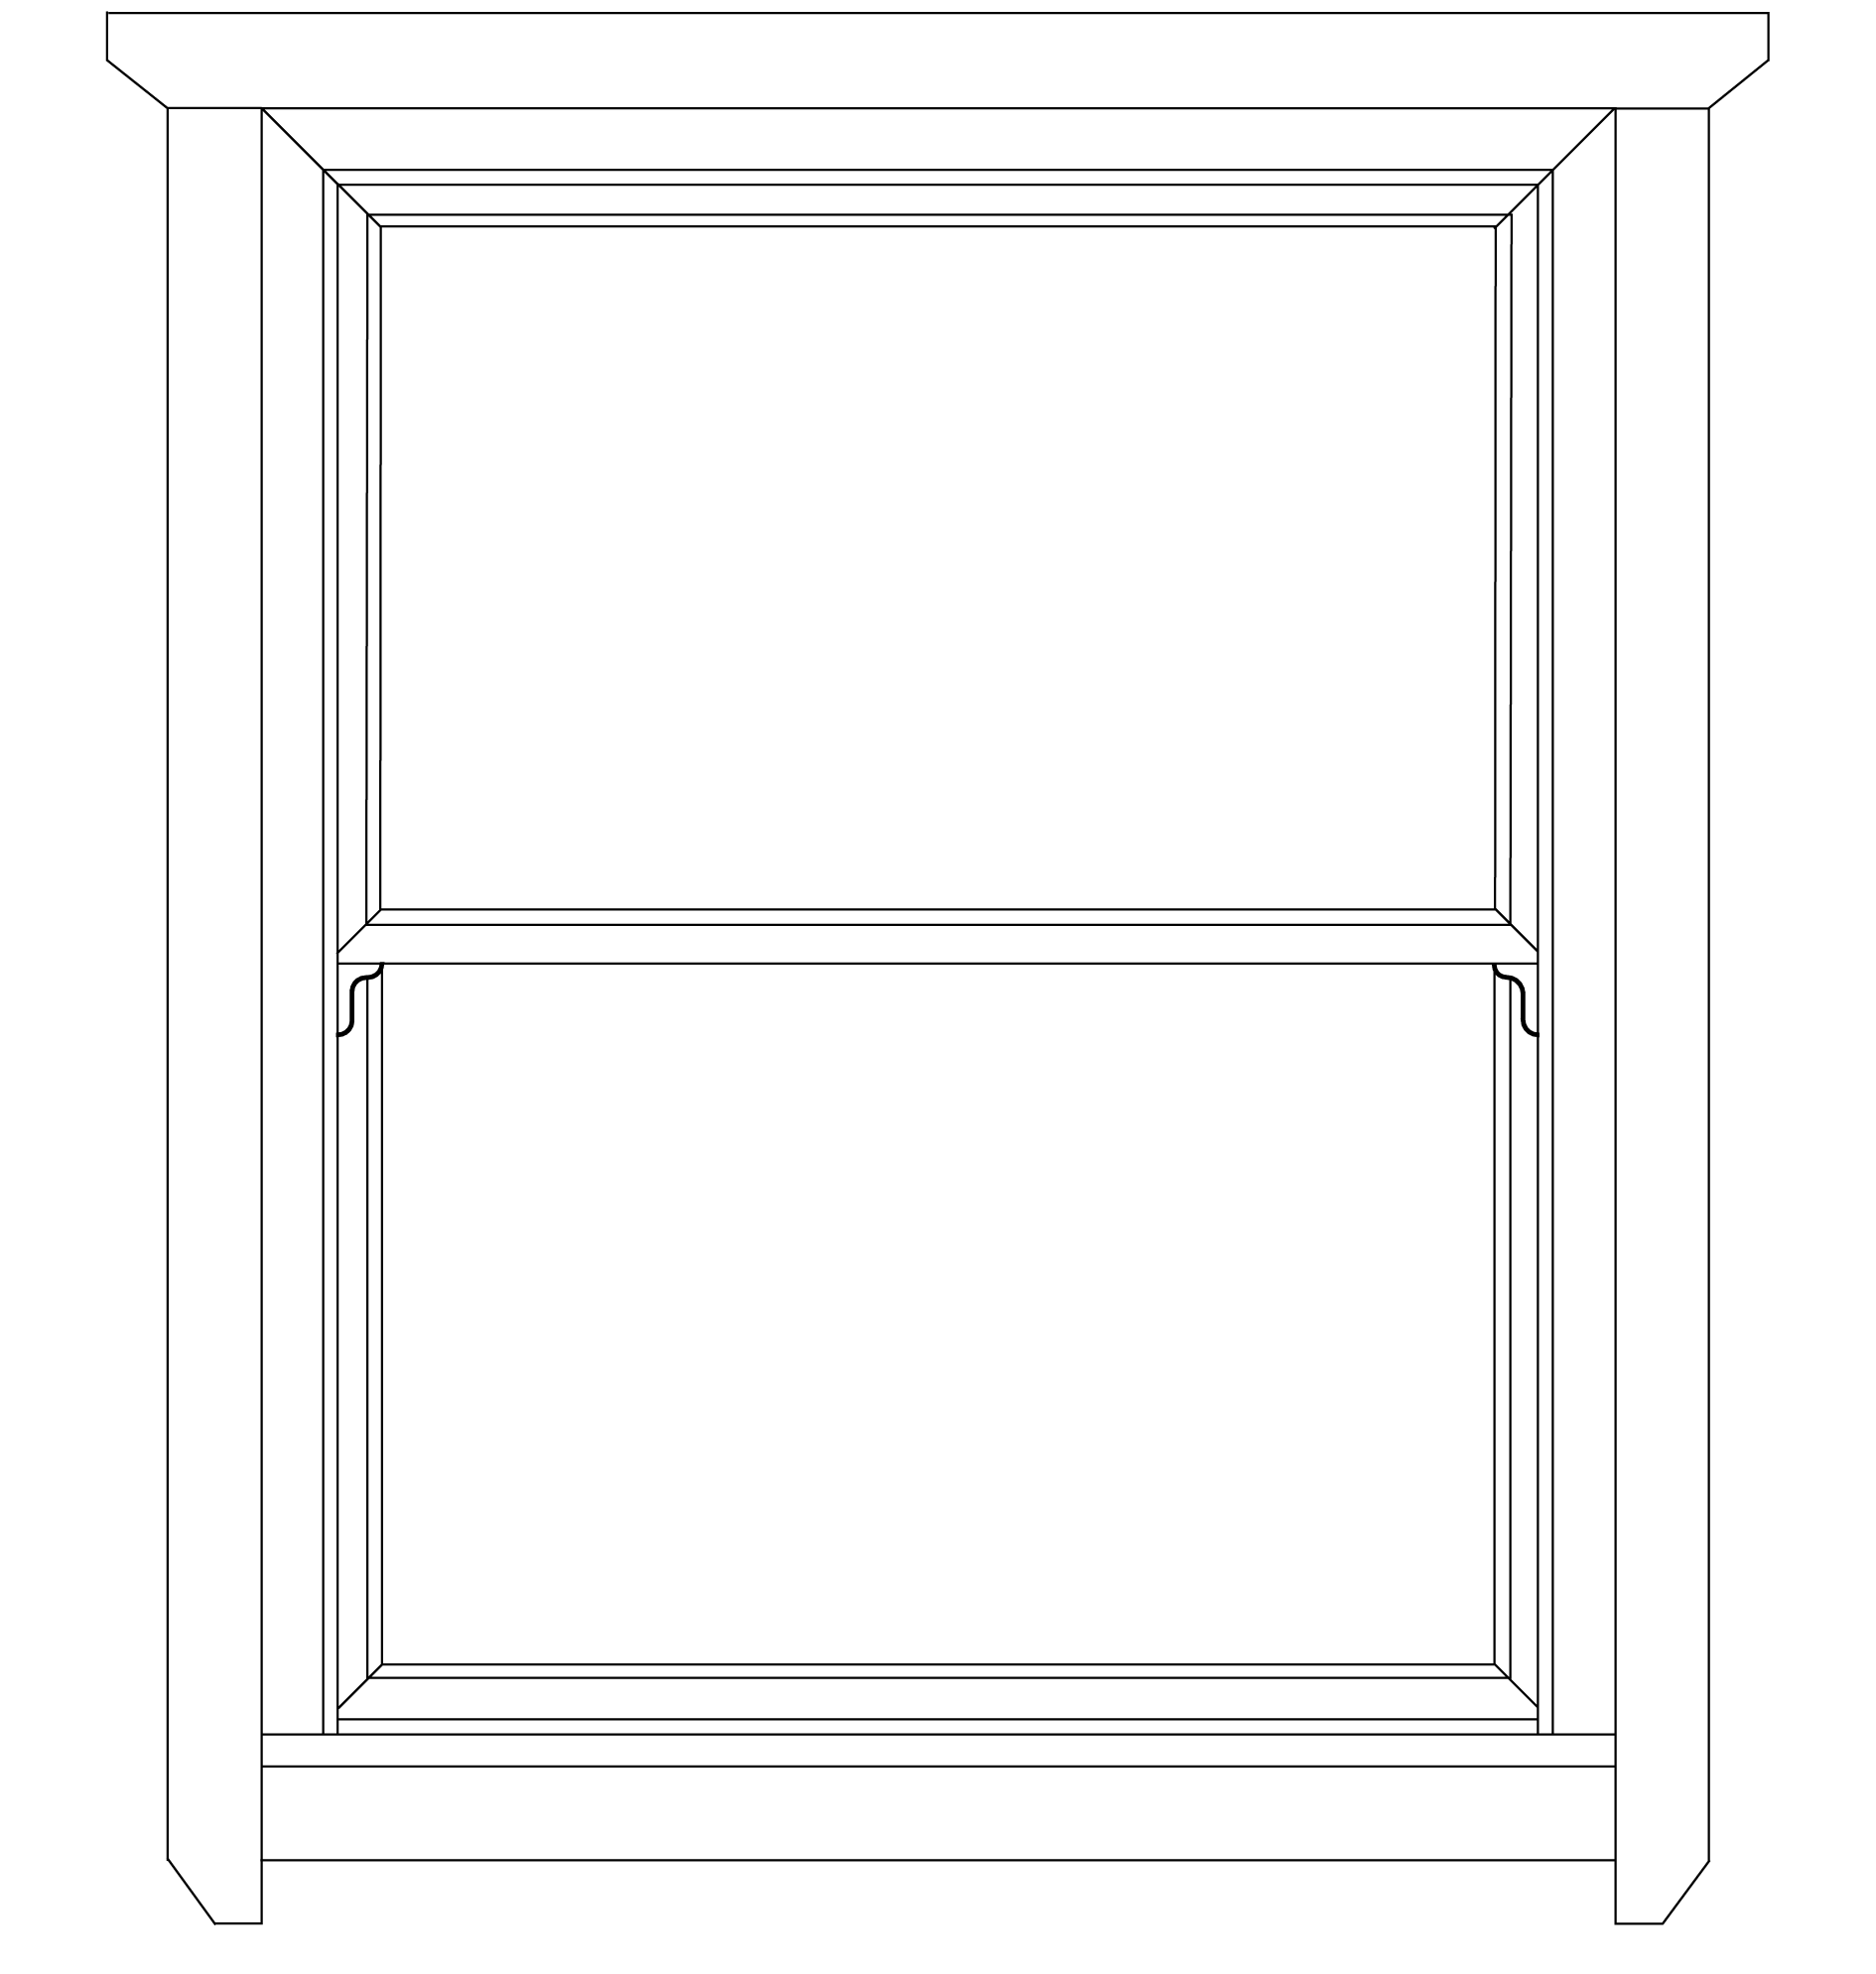 SRGL sash window